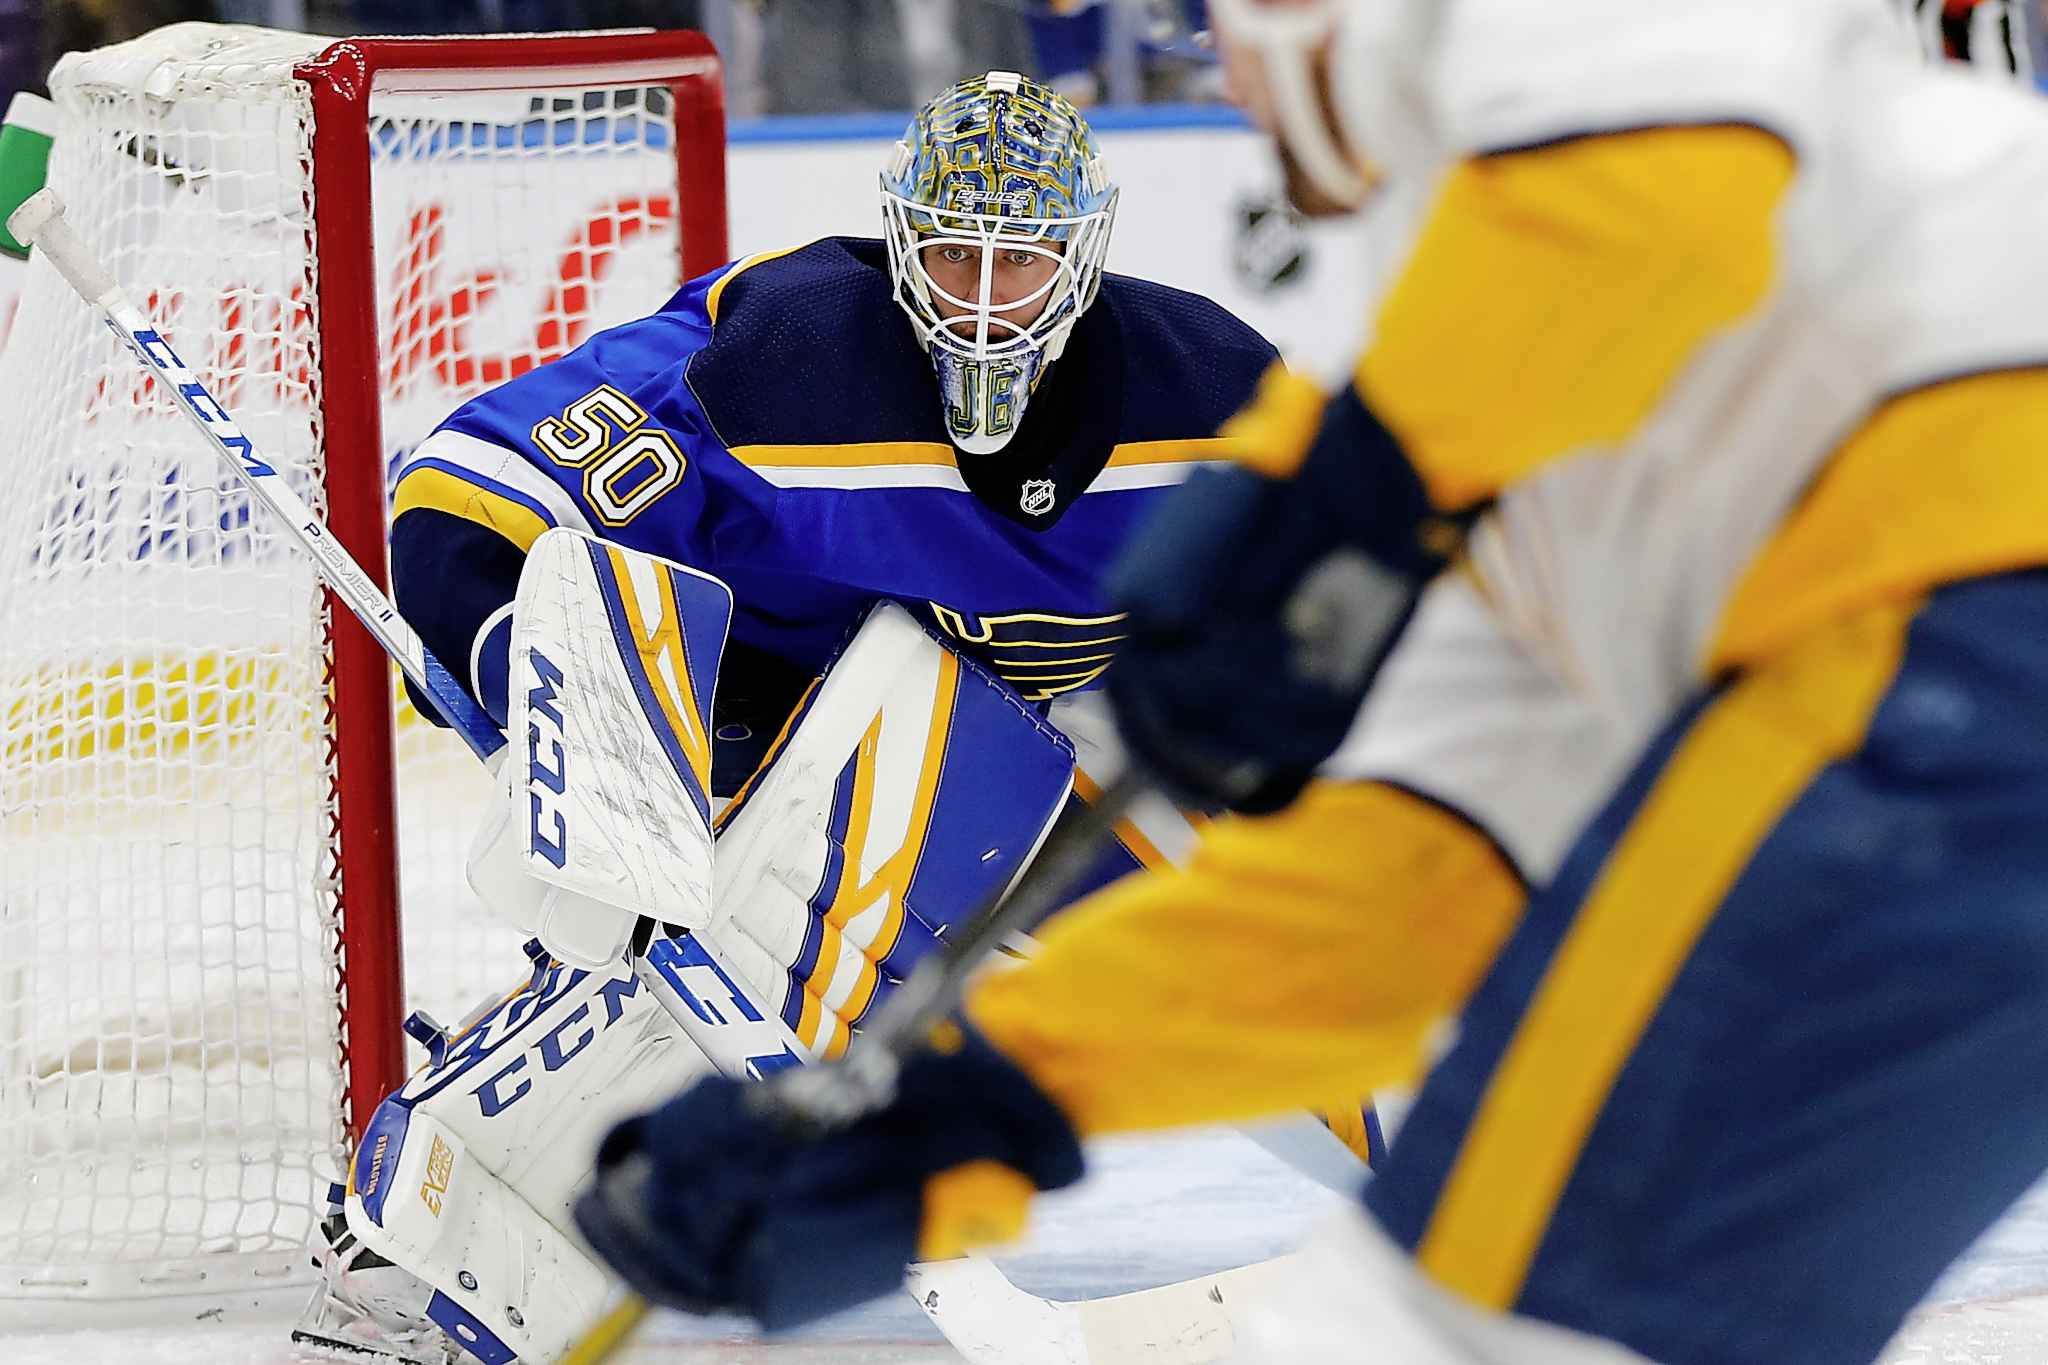 St. Louis Blues' goalie Jordan Binnington has been pivotal in getting his team back into the playoff picture.